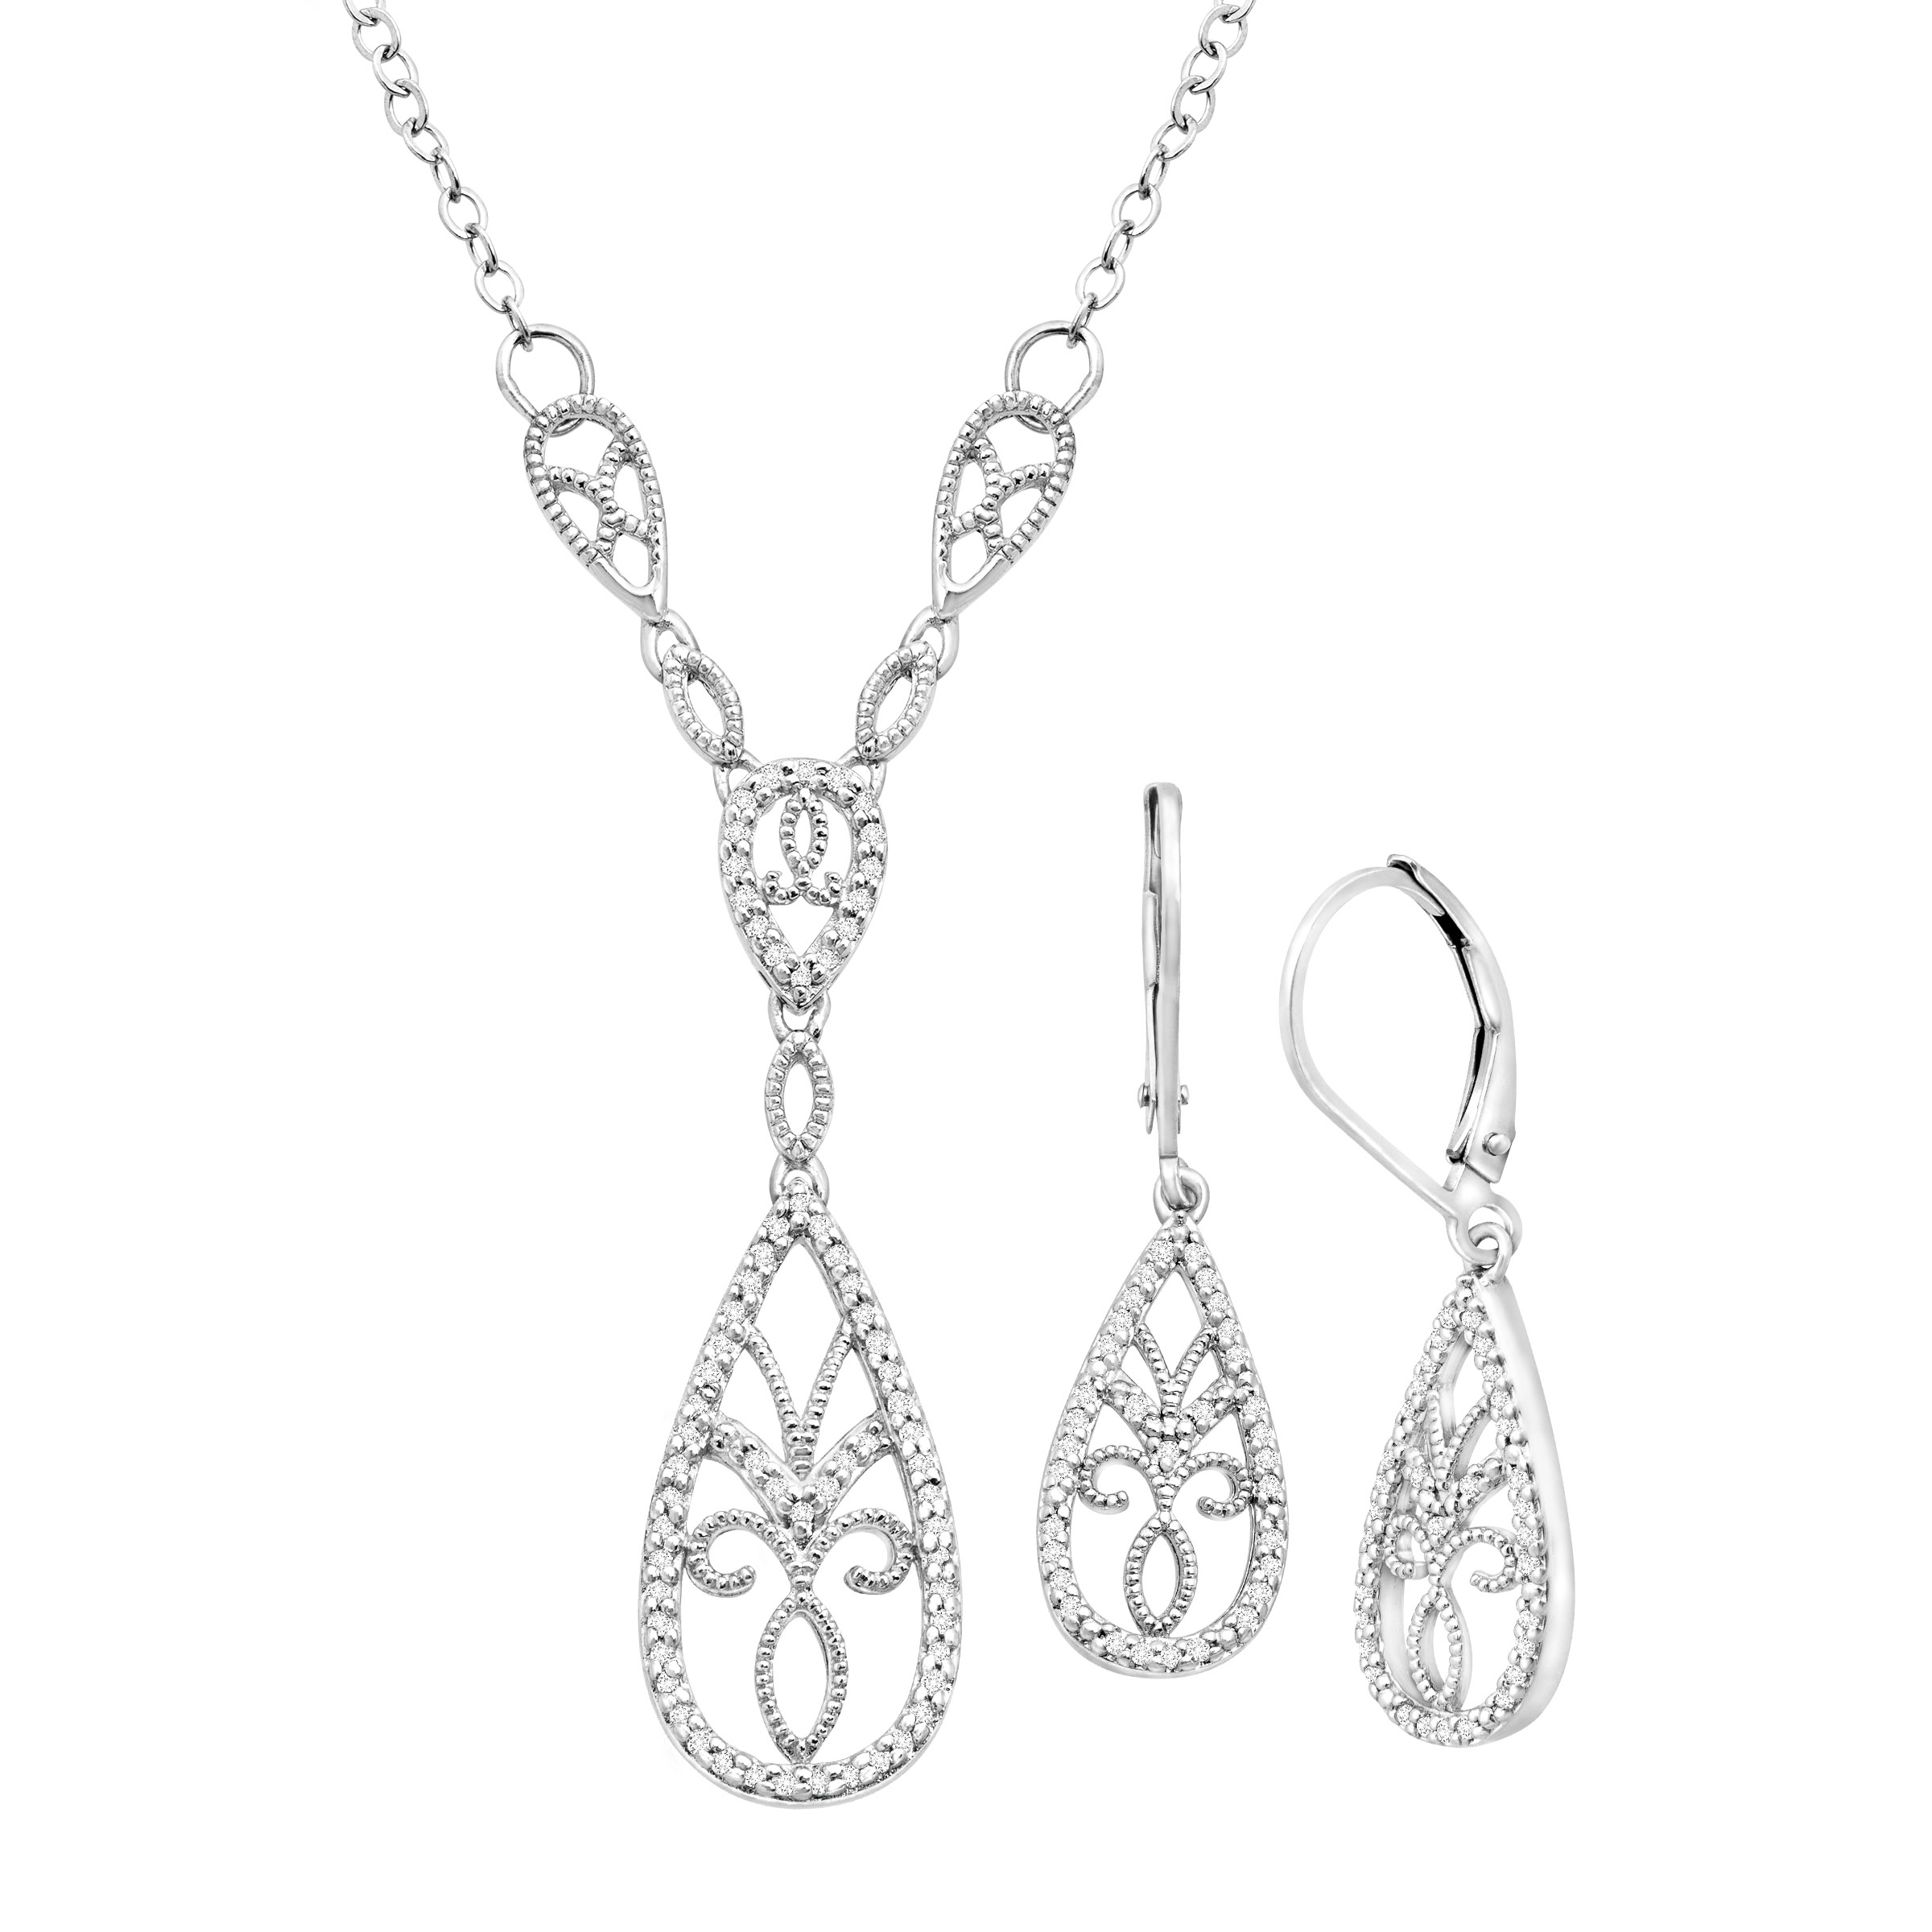 1 3 ct Diamond Necklace & Earring Set in Sterling Silver by Richline Group